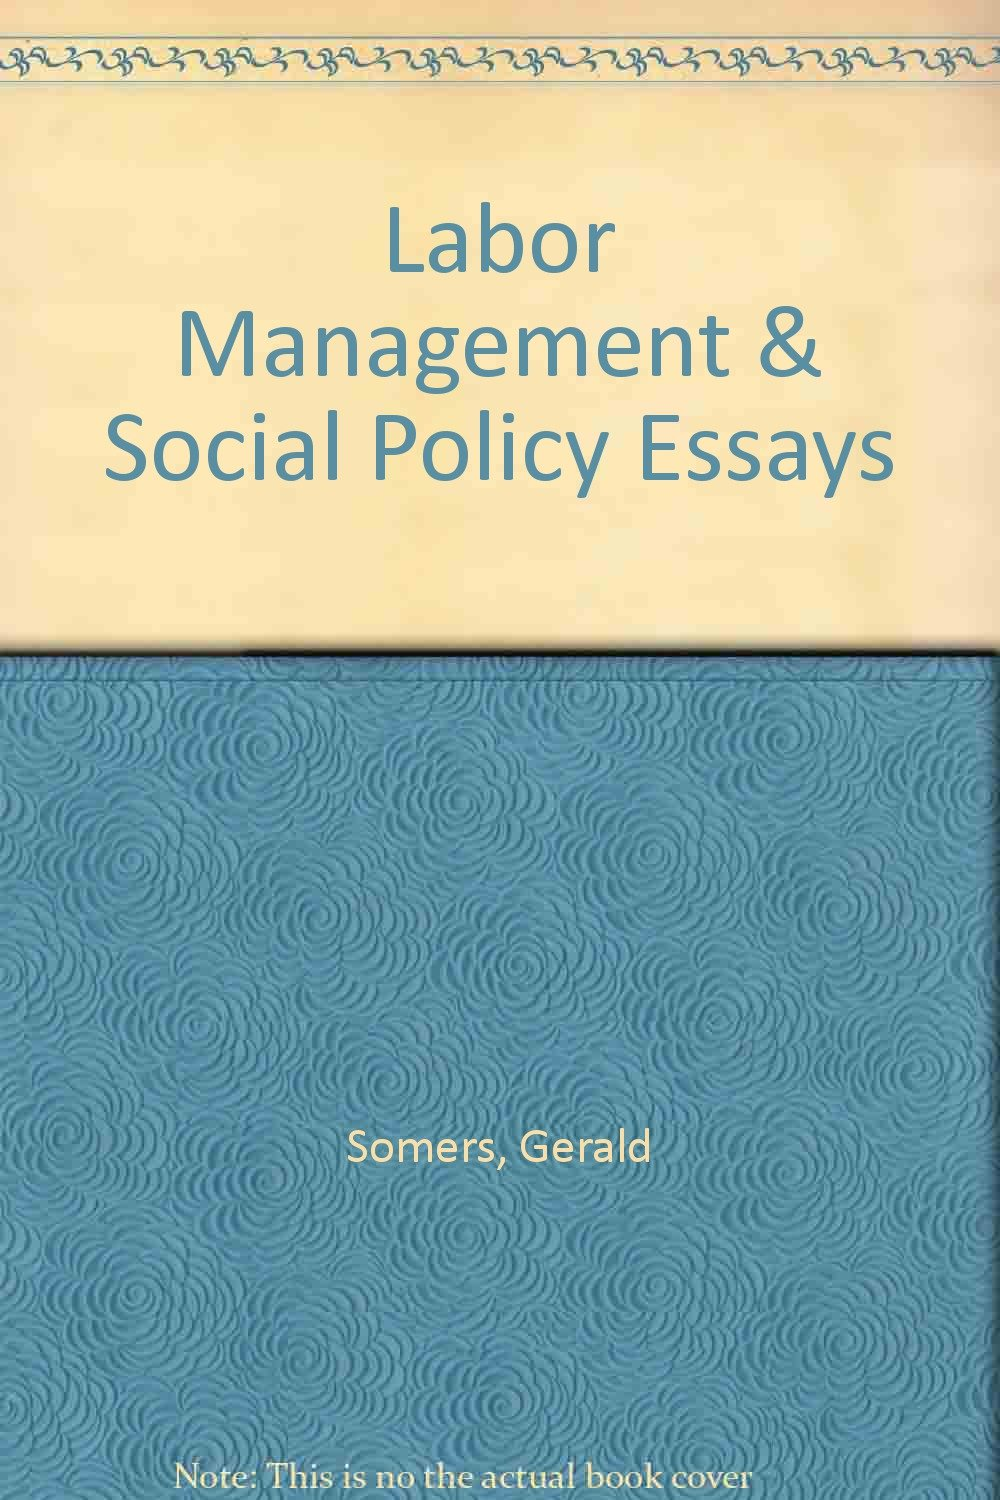 labor management and social policy essays in the john r labor management and social policy essays in the john r commons tradition gerald ed somers 9781135569389 com books